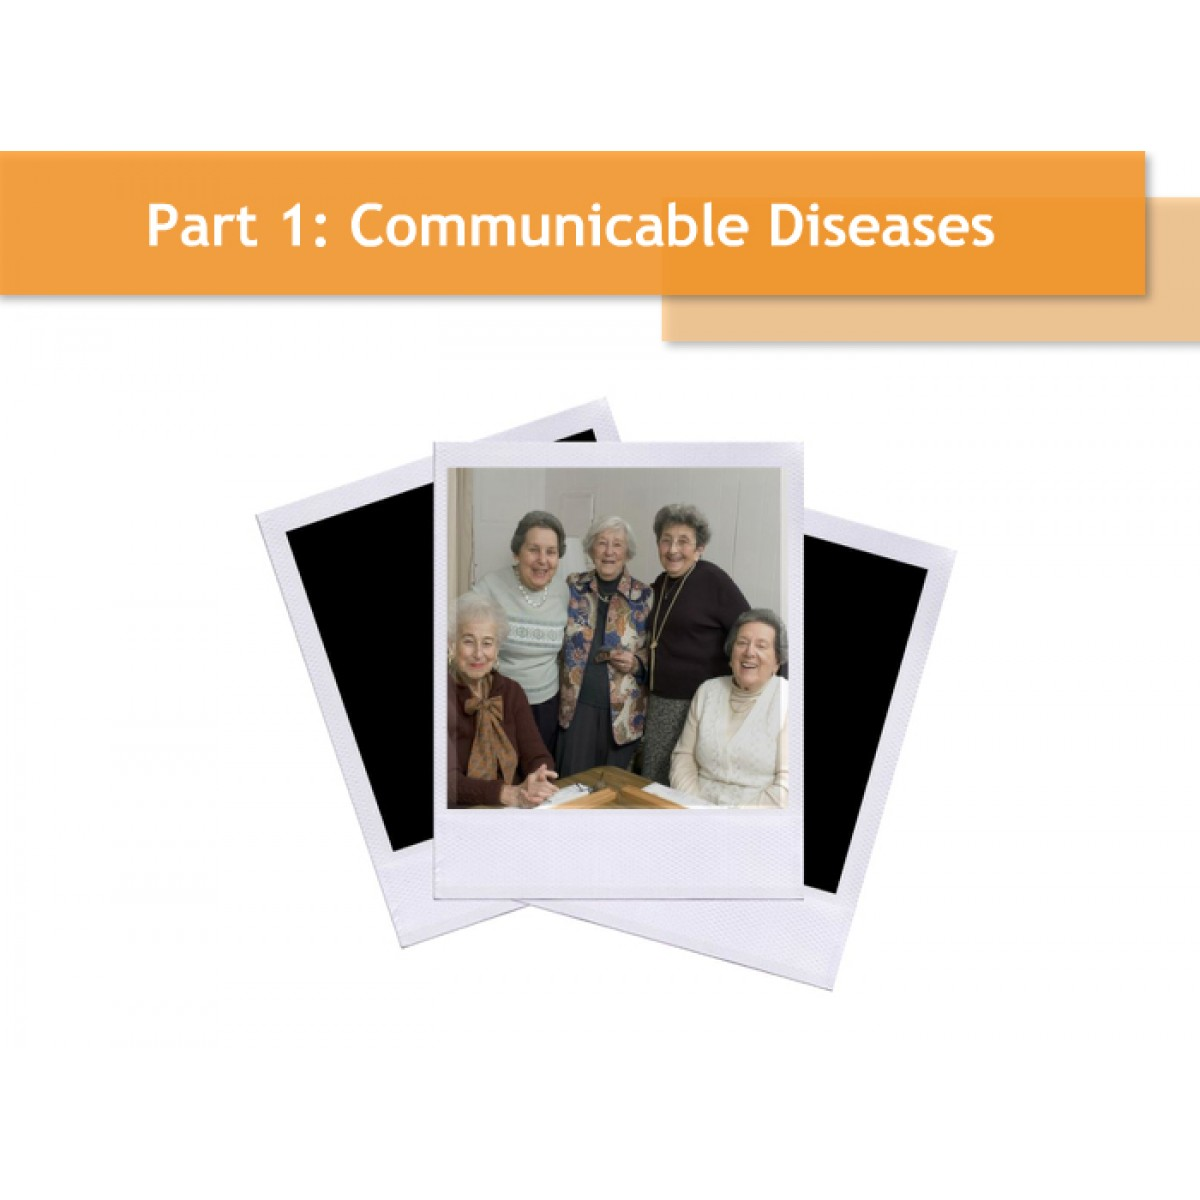 communicable diseases An infectious disease is a disease caused by a microorganism and therefore potentially infinitely transferable to new individuals it may or may not be communicable.